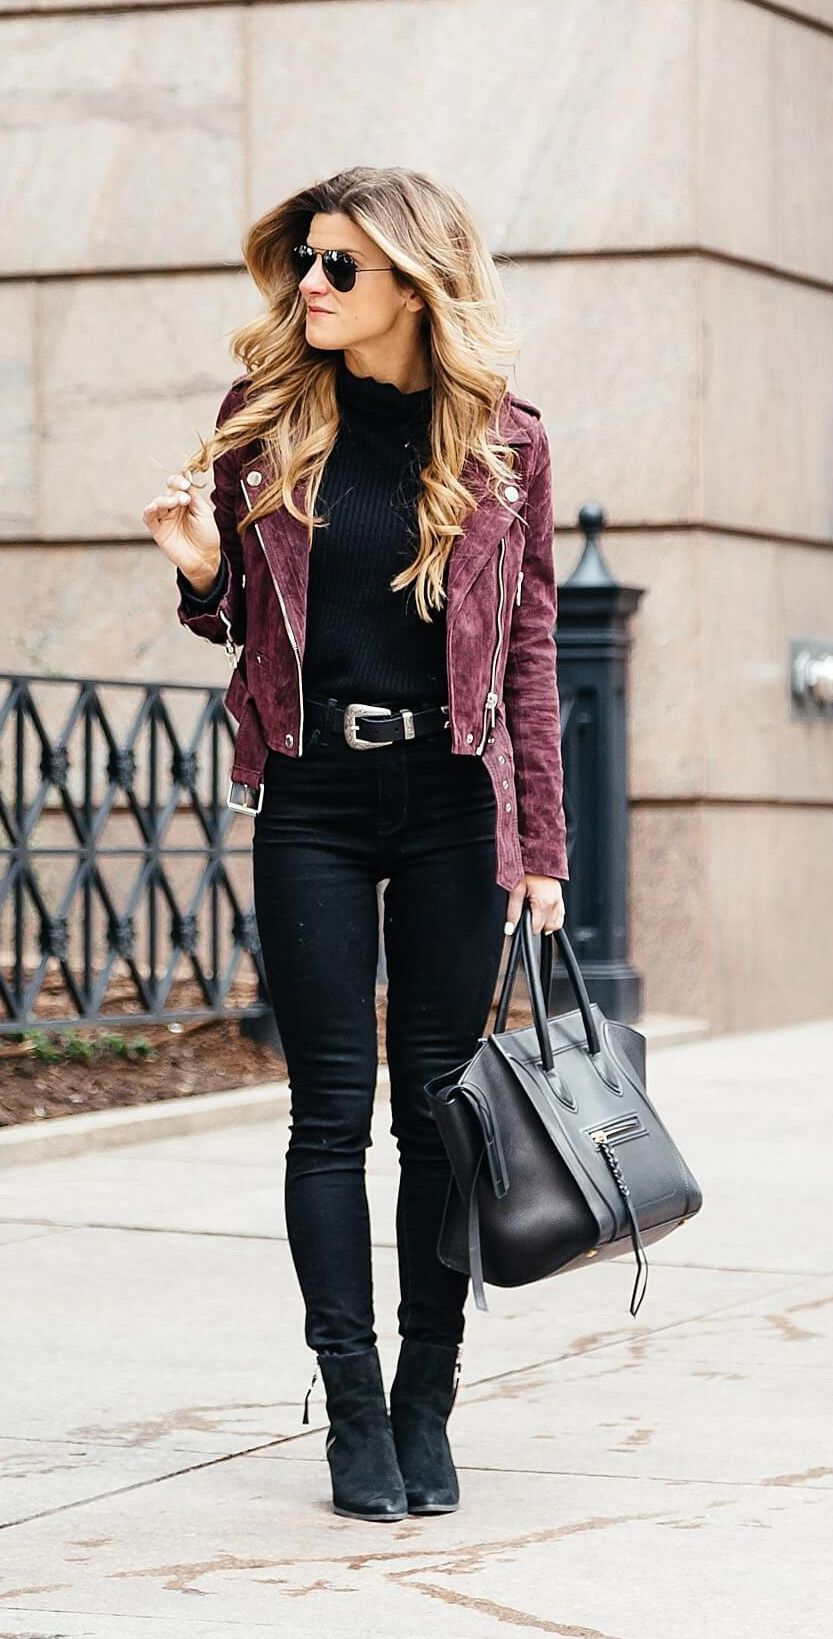 Wine suede jacket over all black. Leather jacket outfits